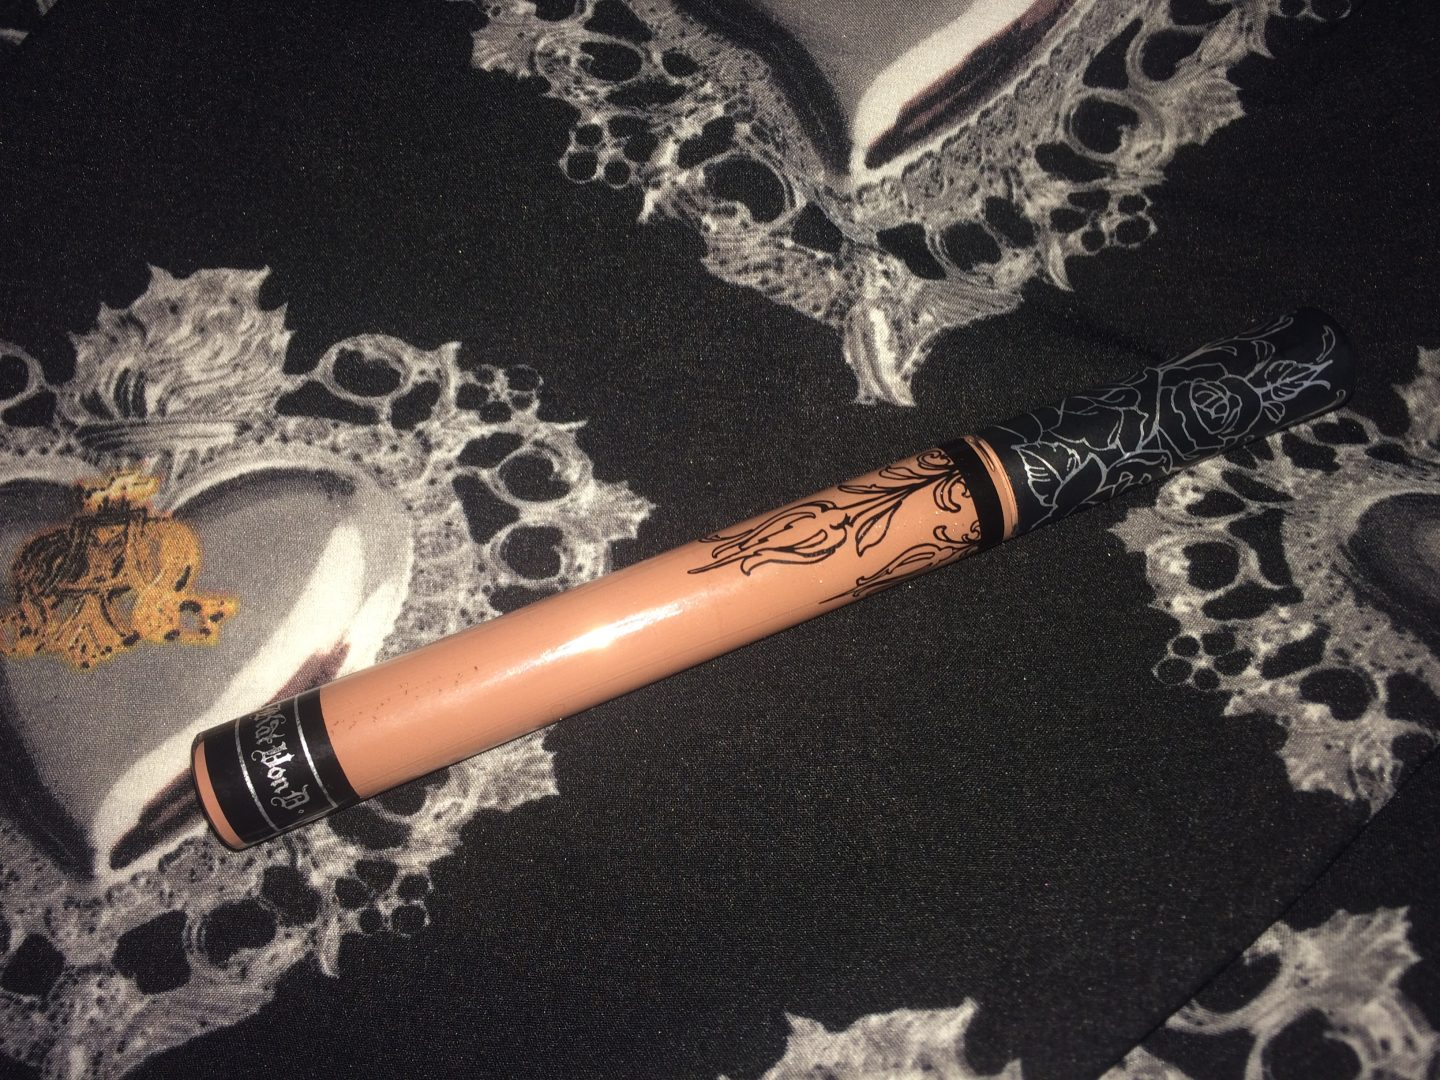 Kat Von D Bow'n'Arrow Everlasting Liquid Lipstick Review